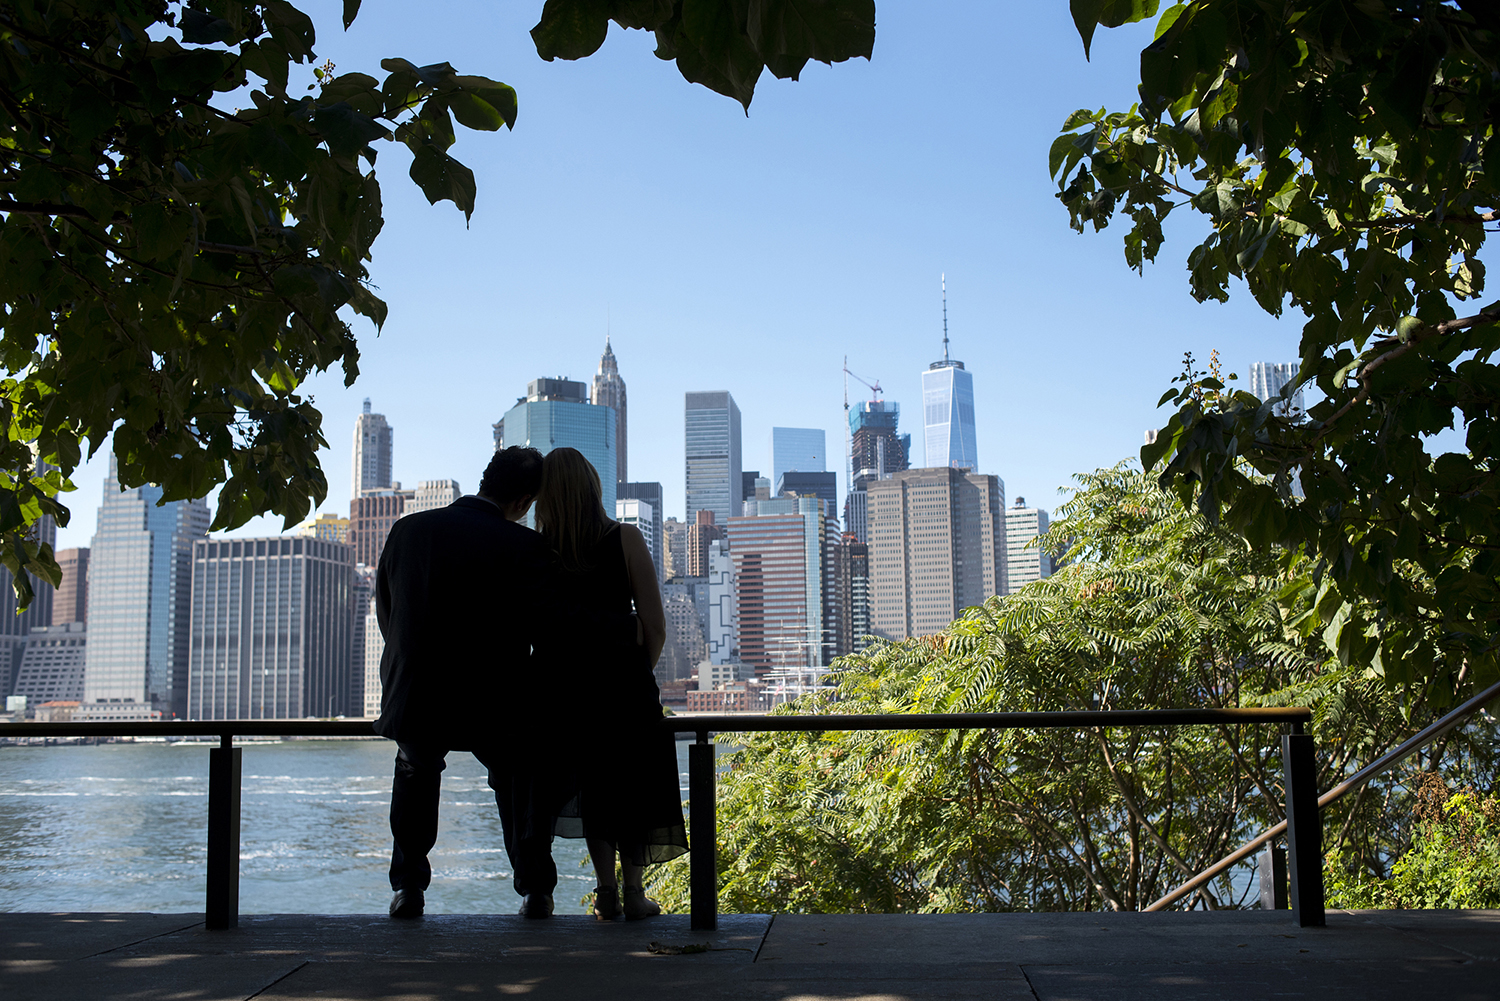 couple against NYC skyline during the engagement session. NYC wedding photographer